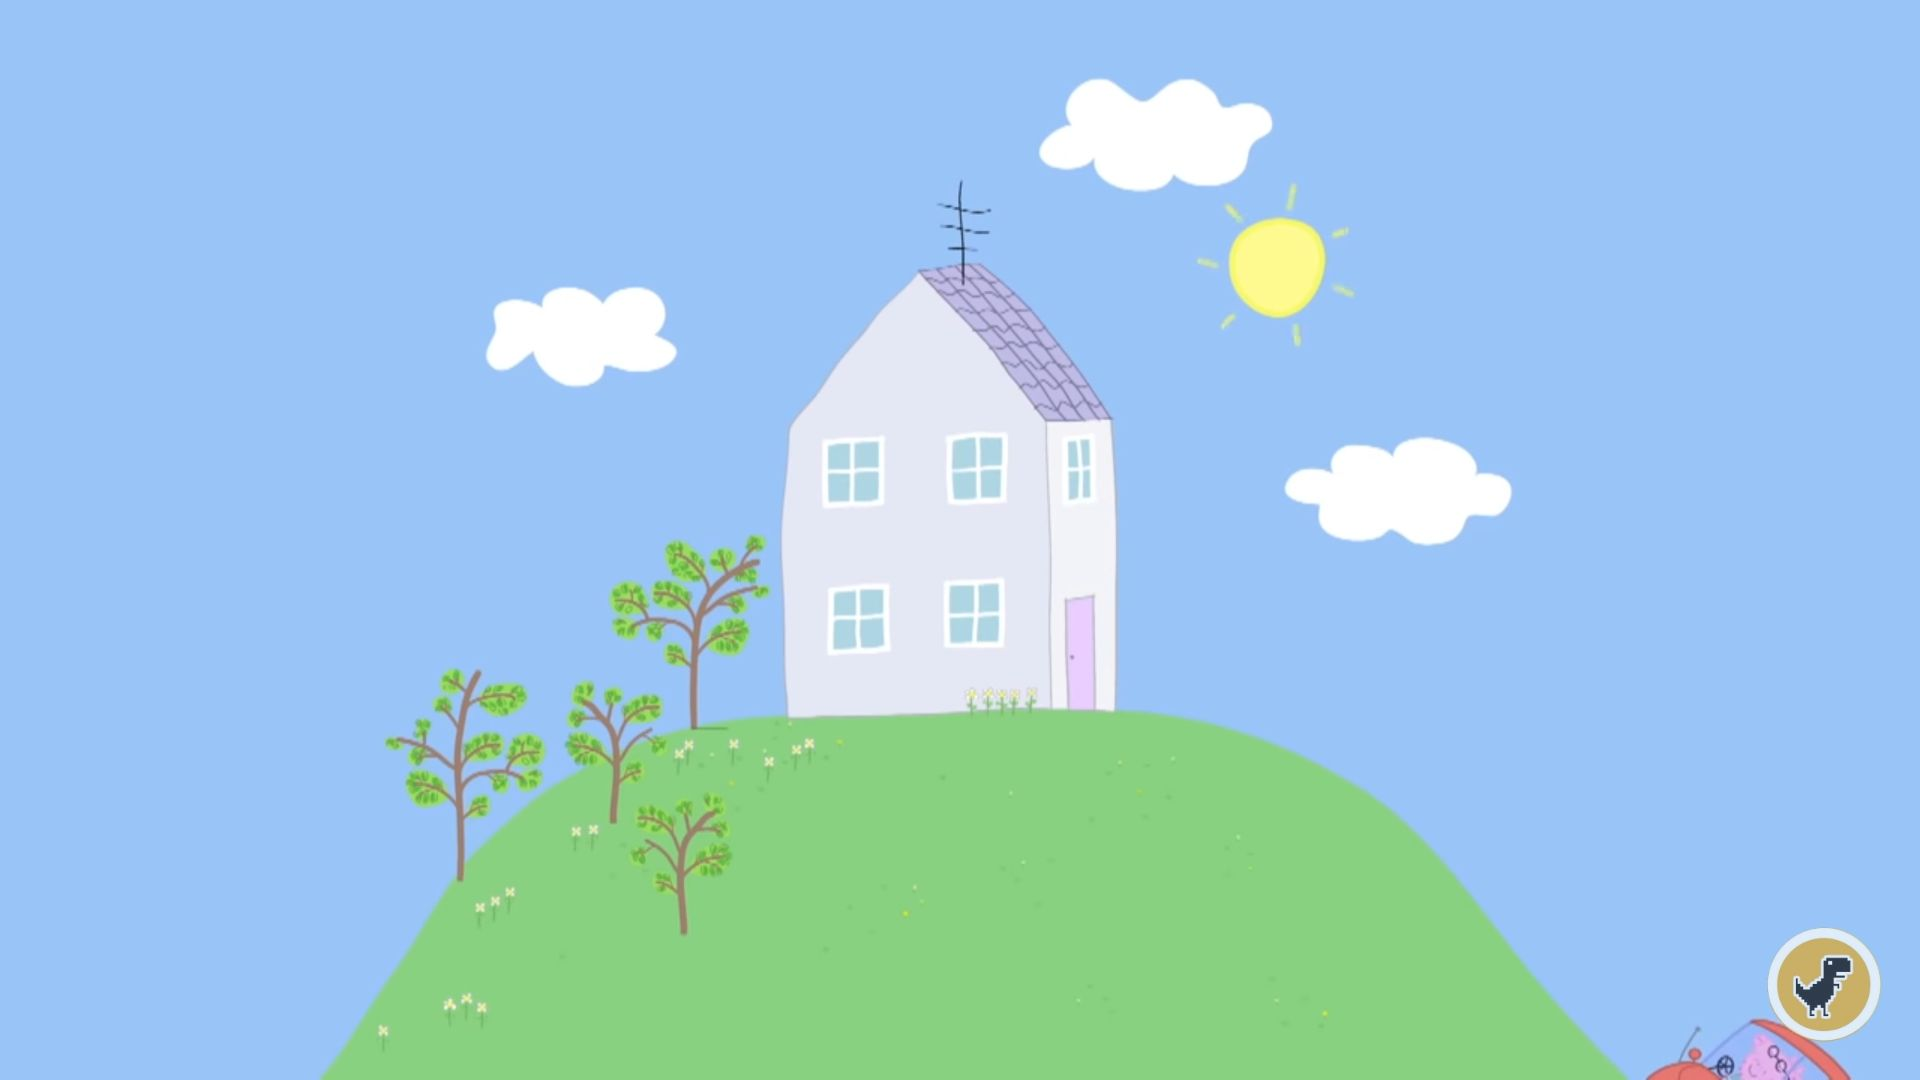 Peppa Pig House Wallpapers   Top Peppa Pig House Backgrounds